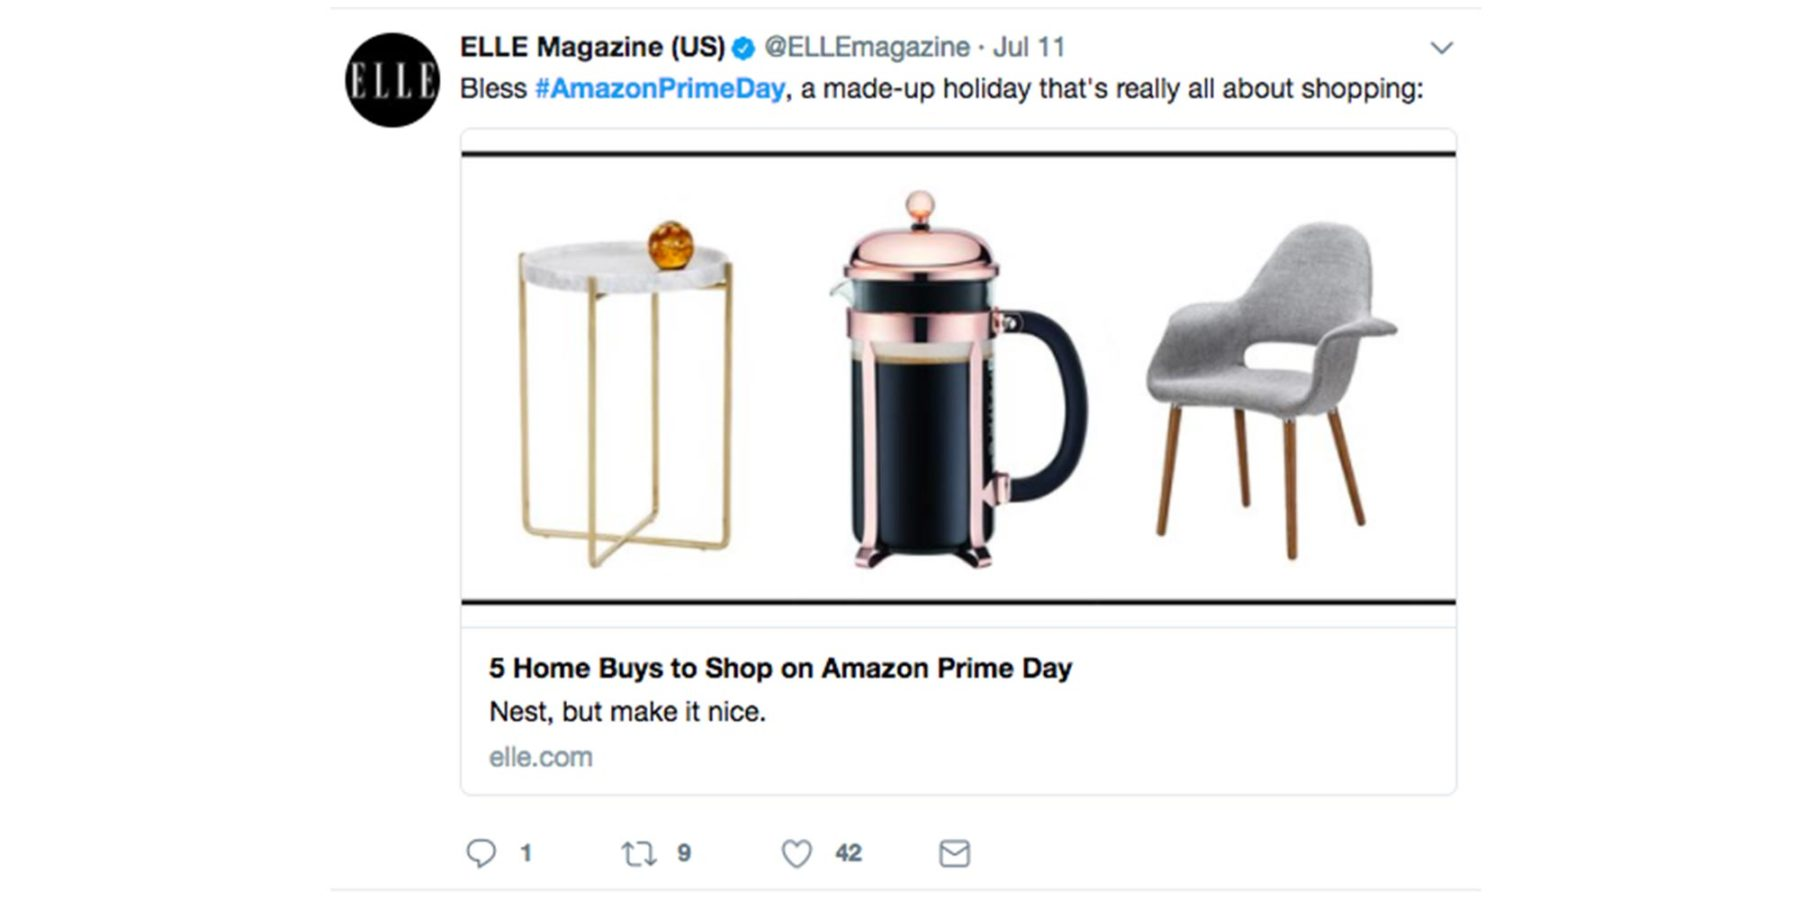 Amazon Prime Day 2017 - Reaction on Twitter